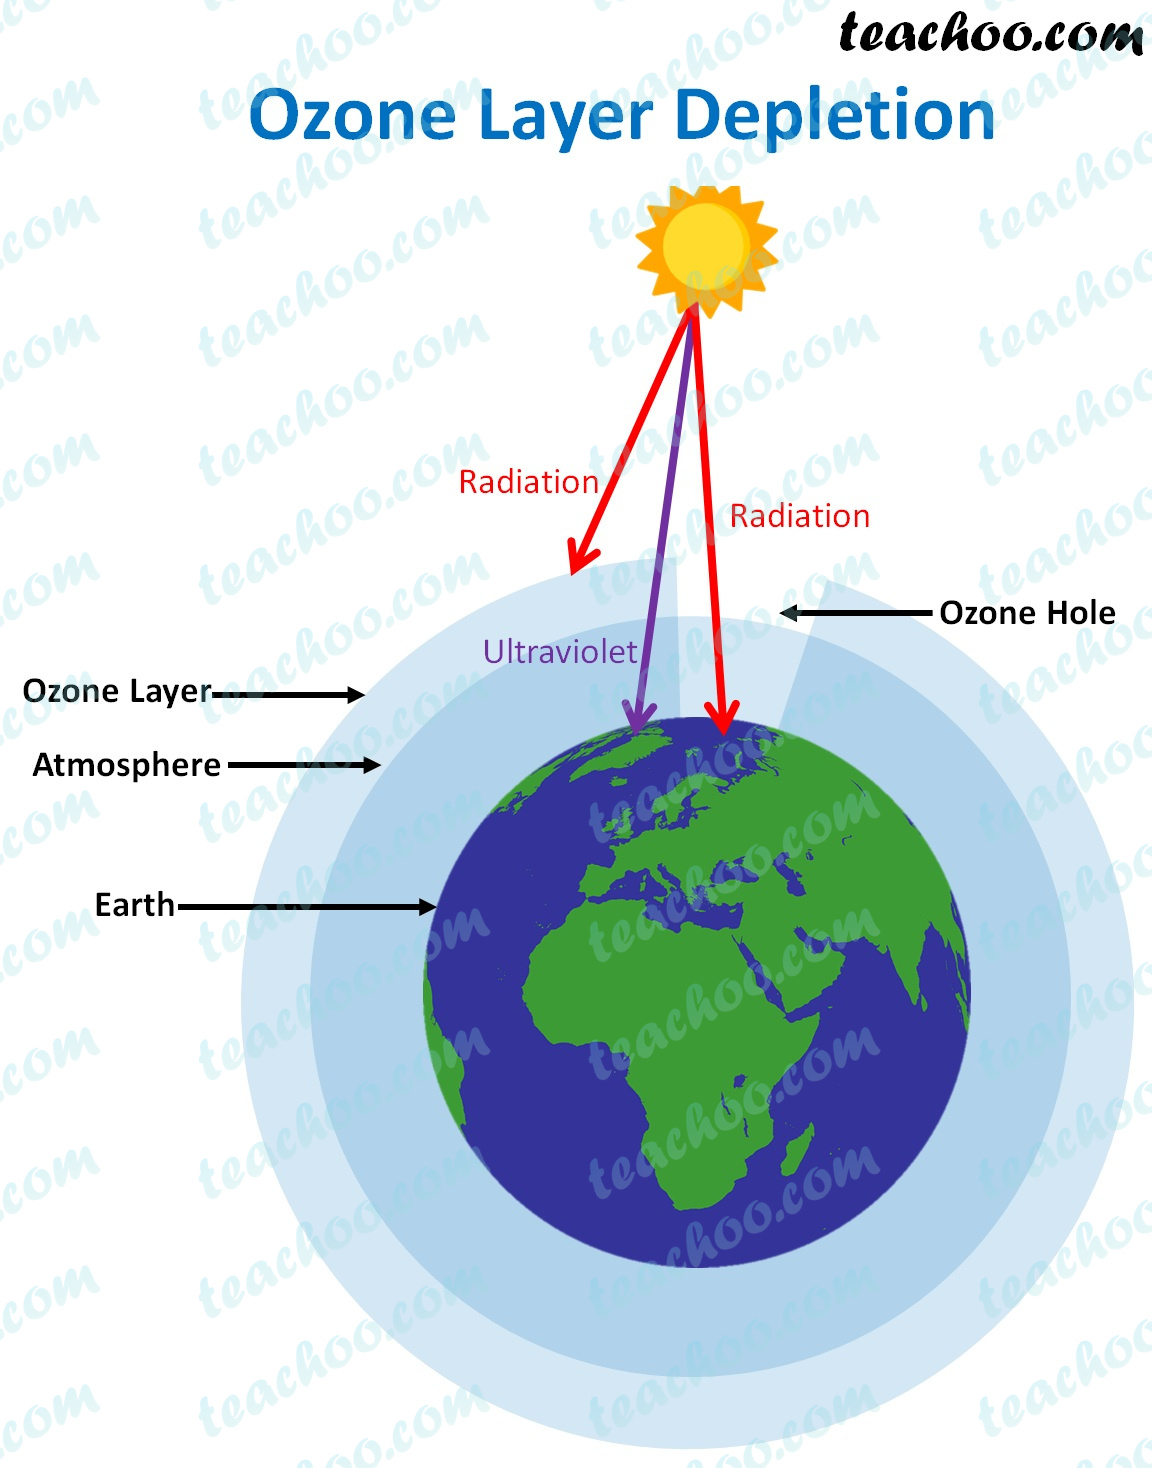 ozone-layer-depletion---teachoo.jpg